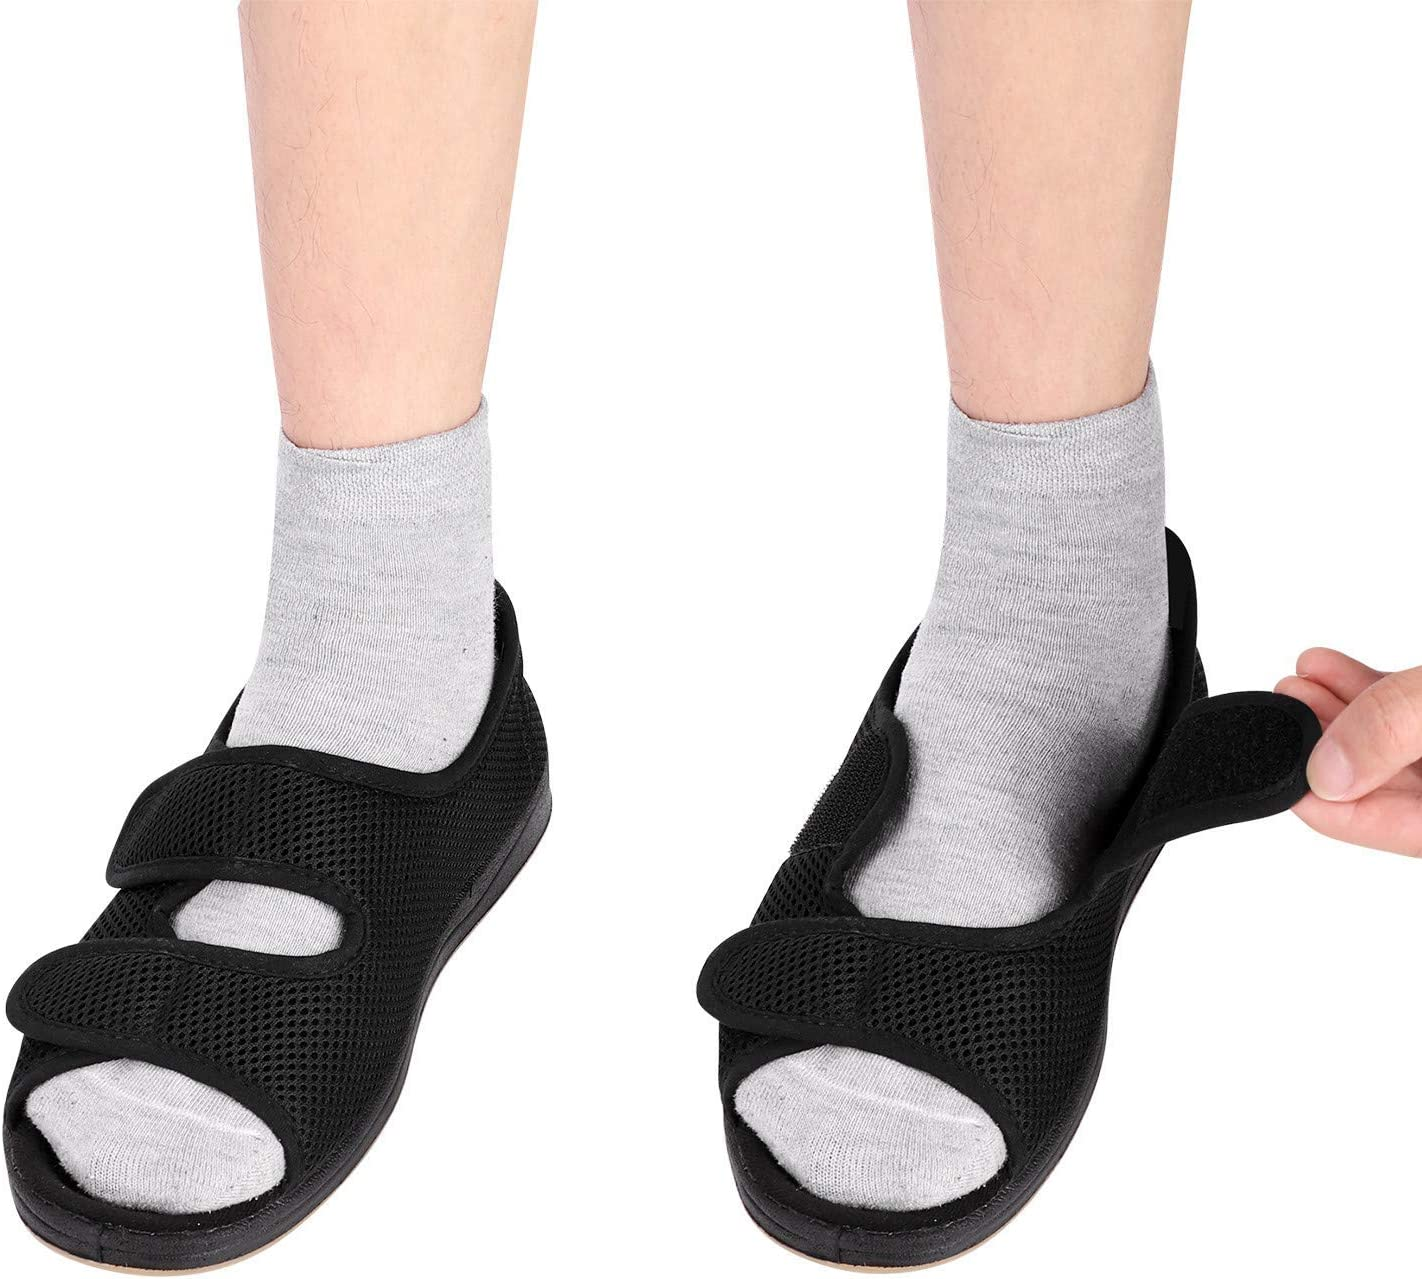 Boston Mall Women's Diabetic Purchase Shoes Adjustable Extra Swollen Slippers Wide Me